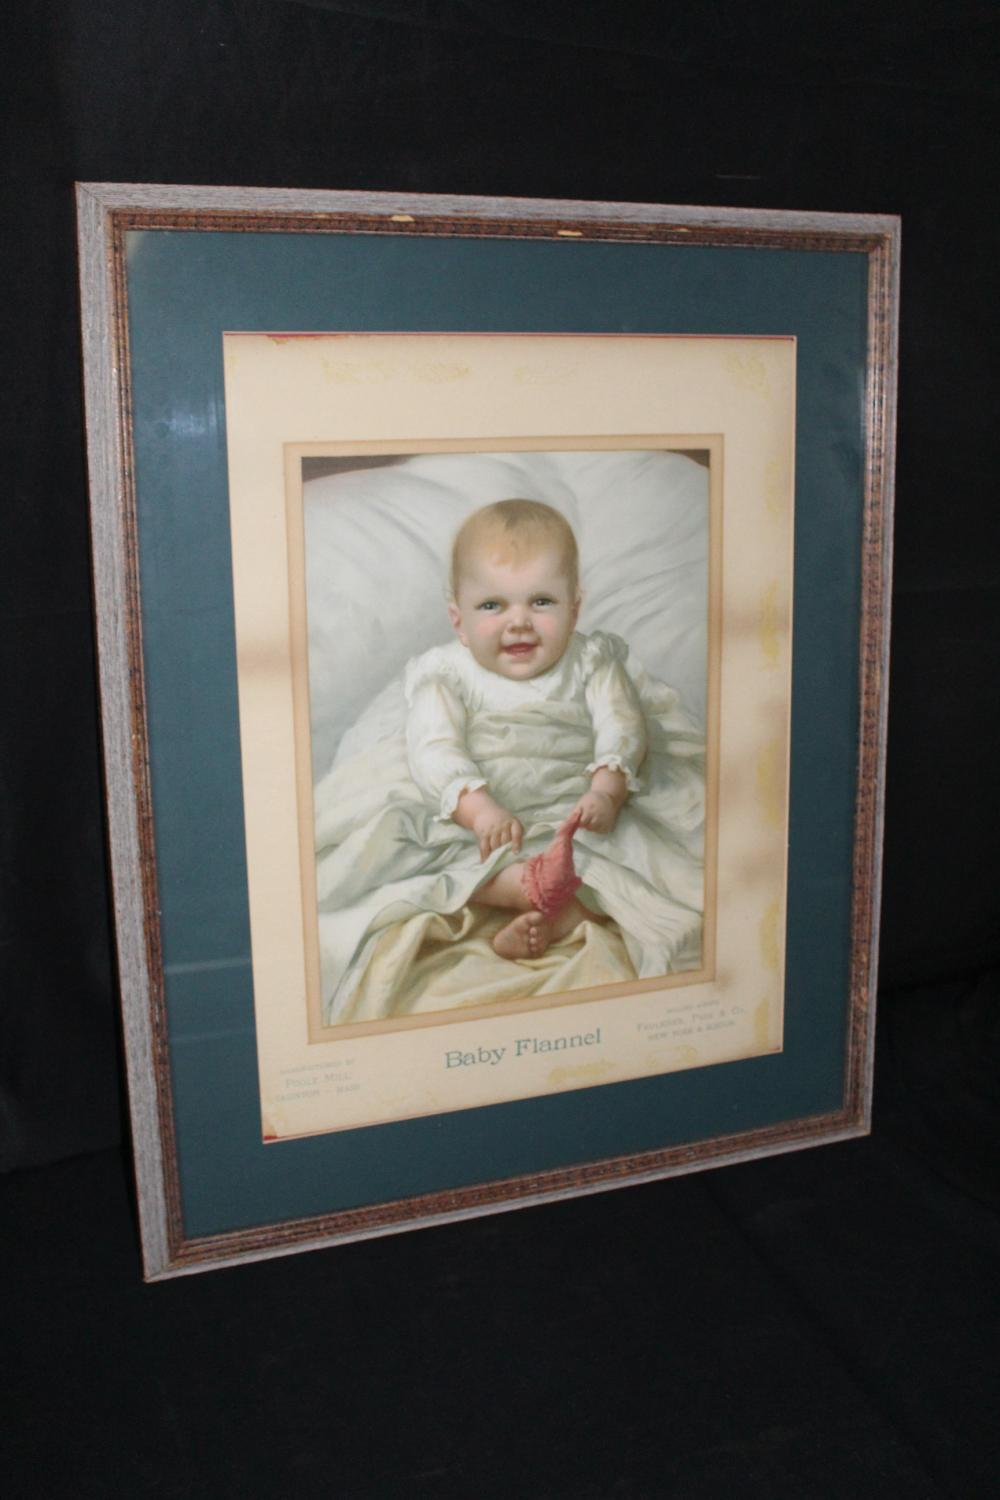 POOLE MILL TAUNTON MASS BABY FLANNEL LITHO SIGN